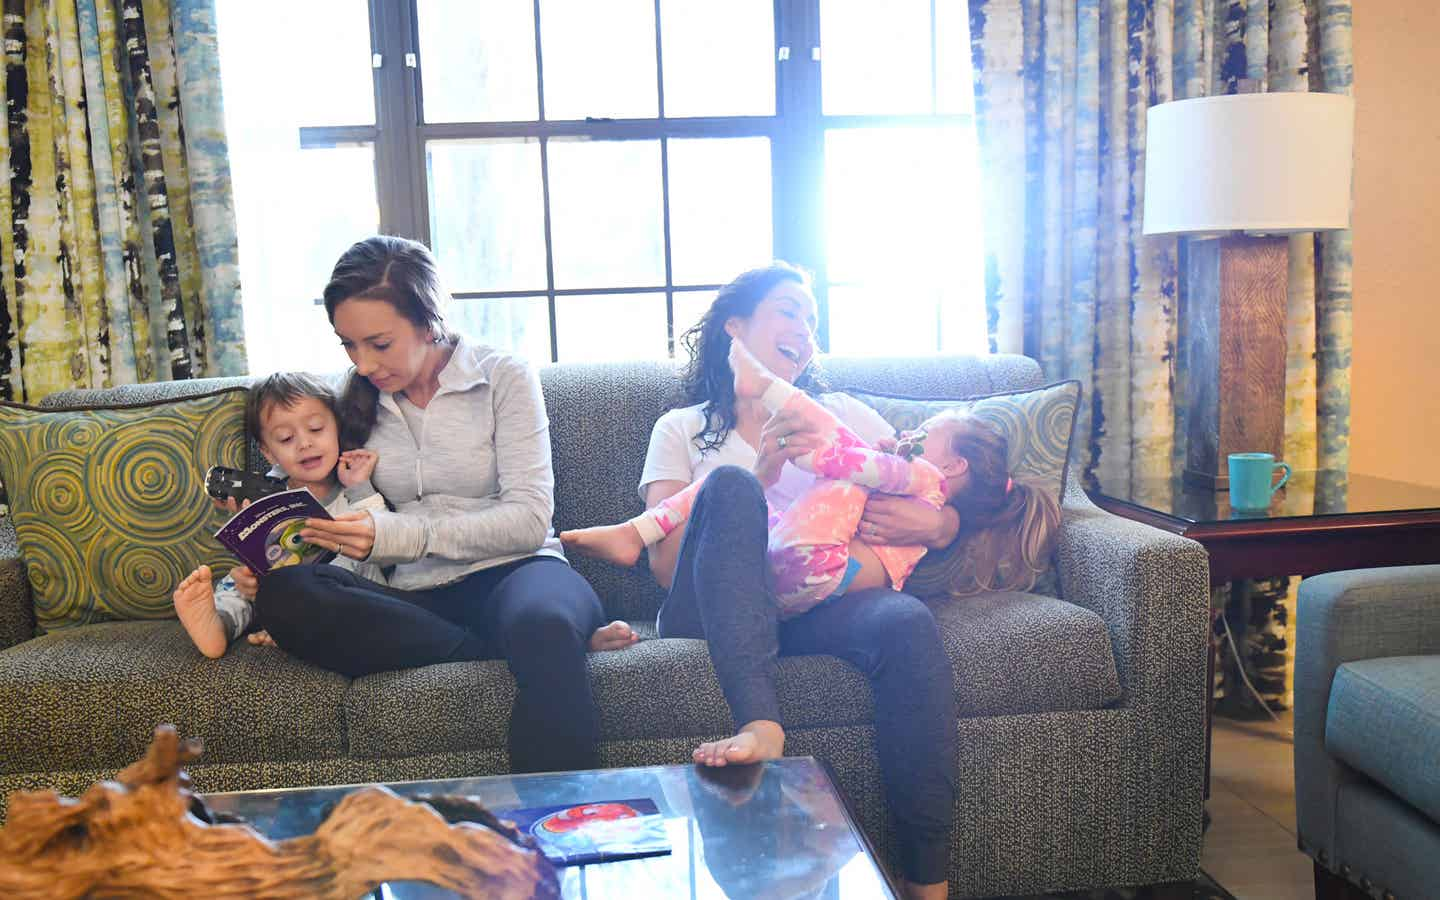 Family reading and laughing on a sofa